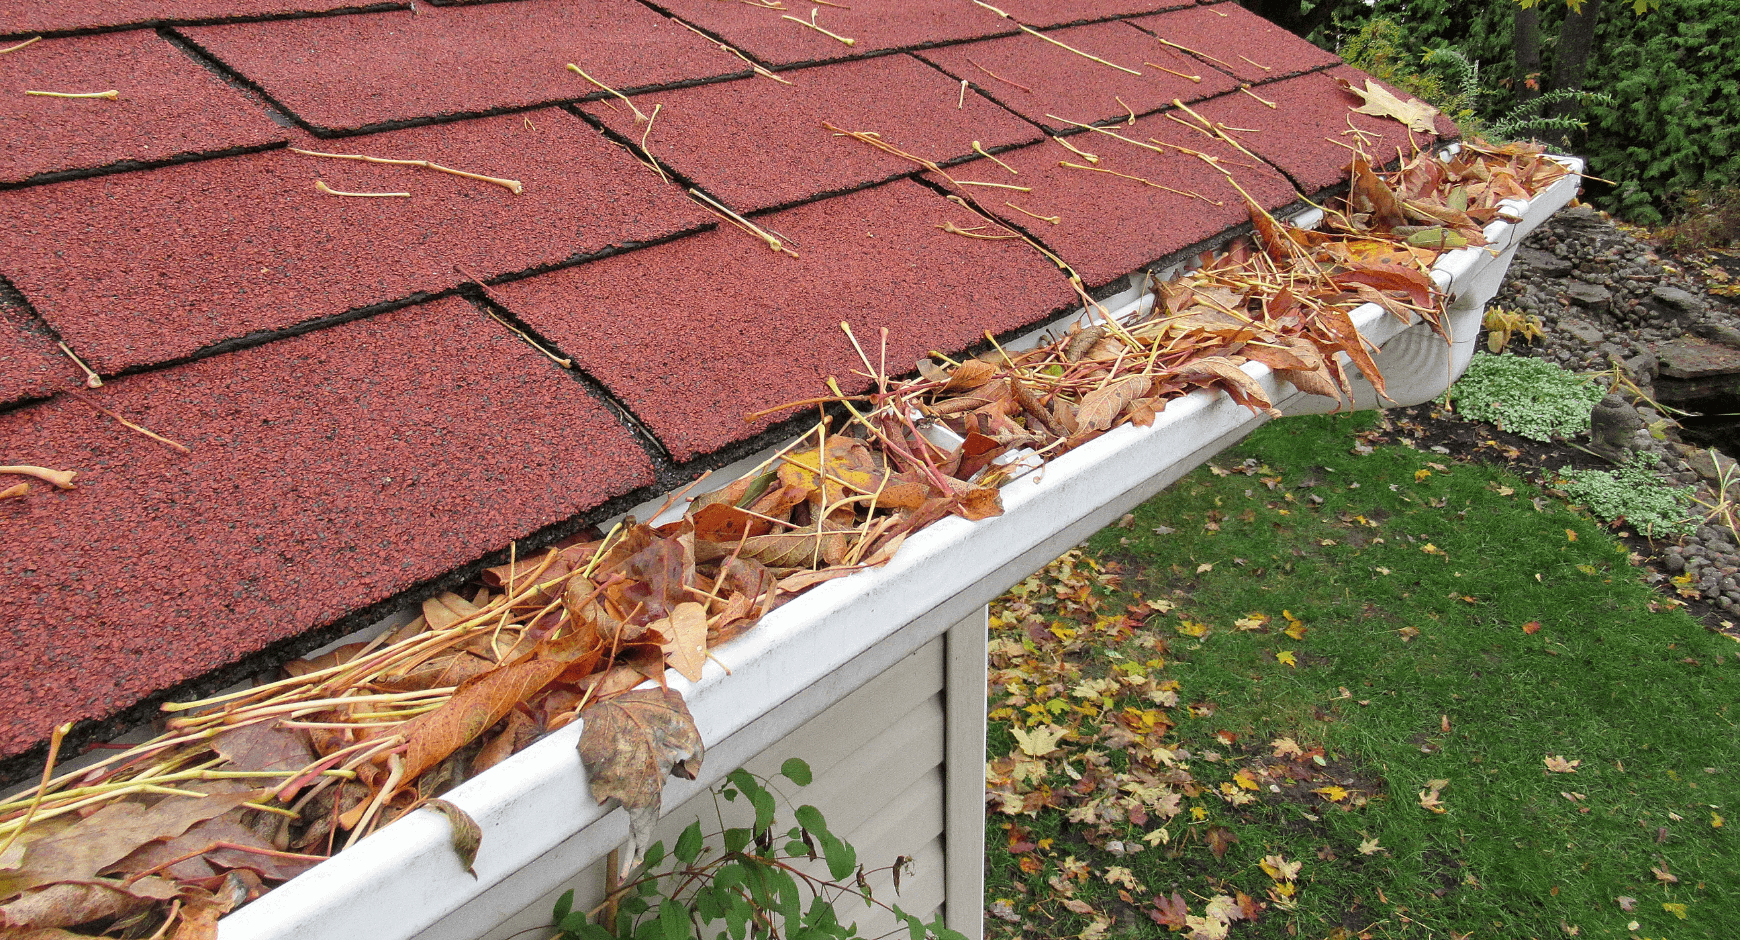 Image of gutters clogged with debris